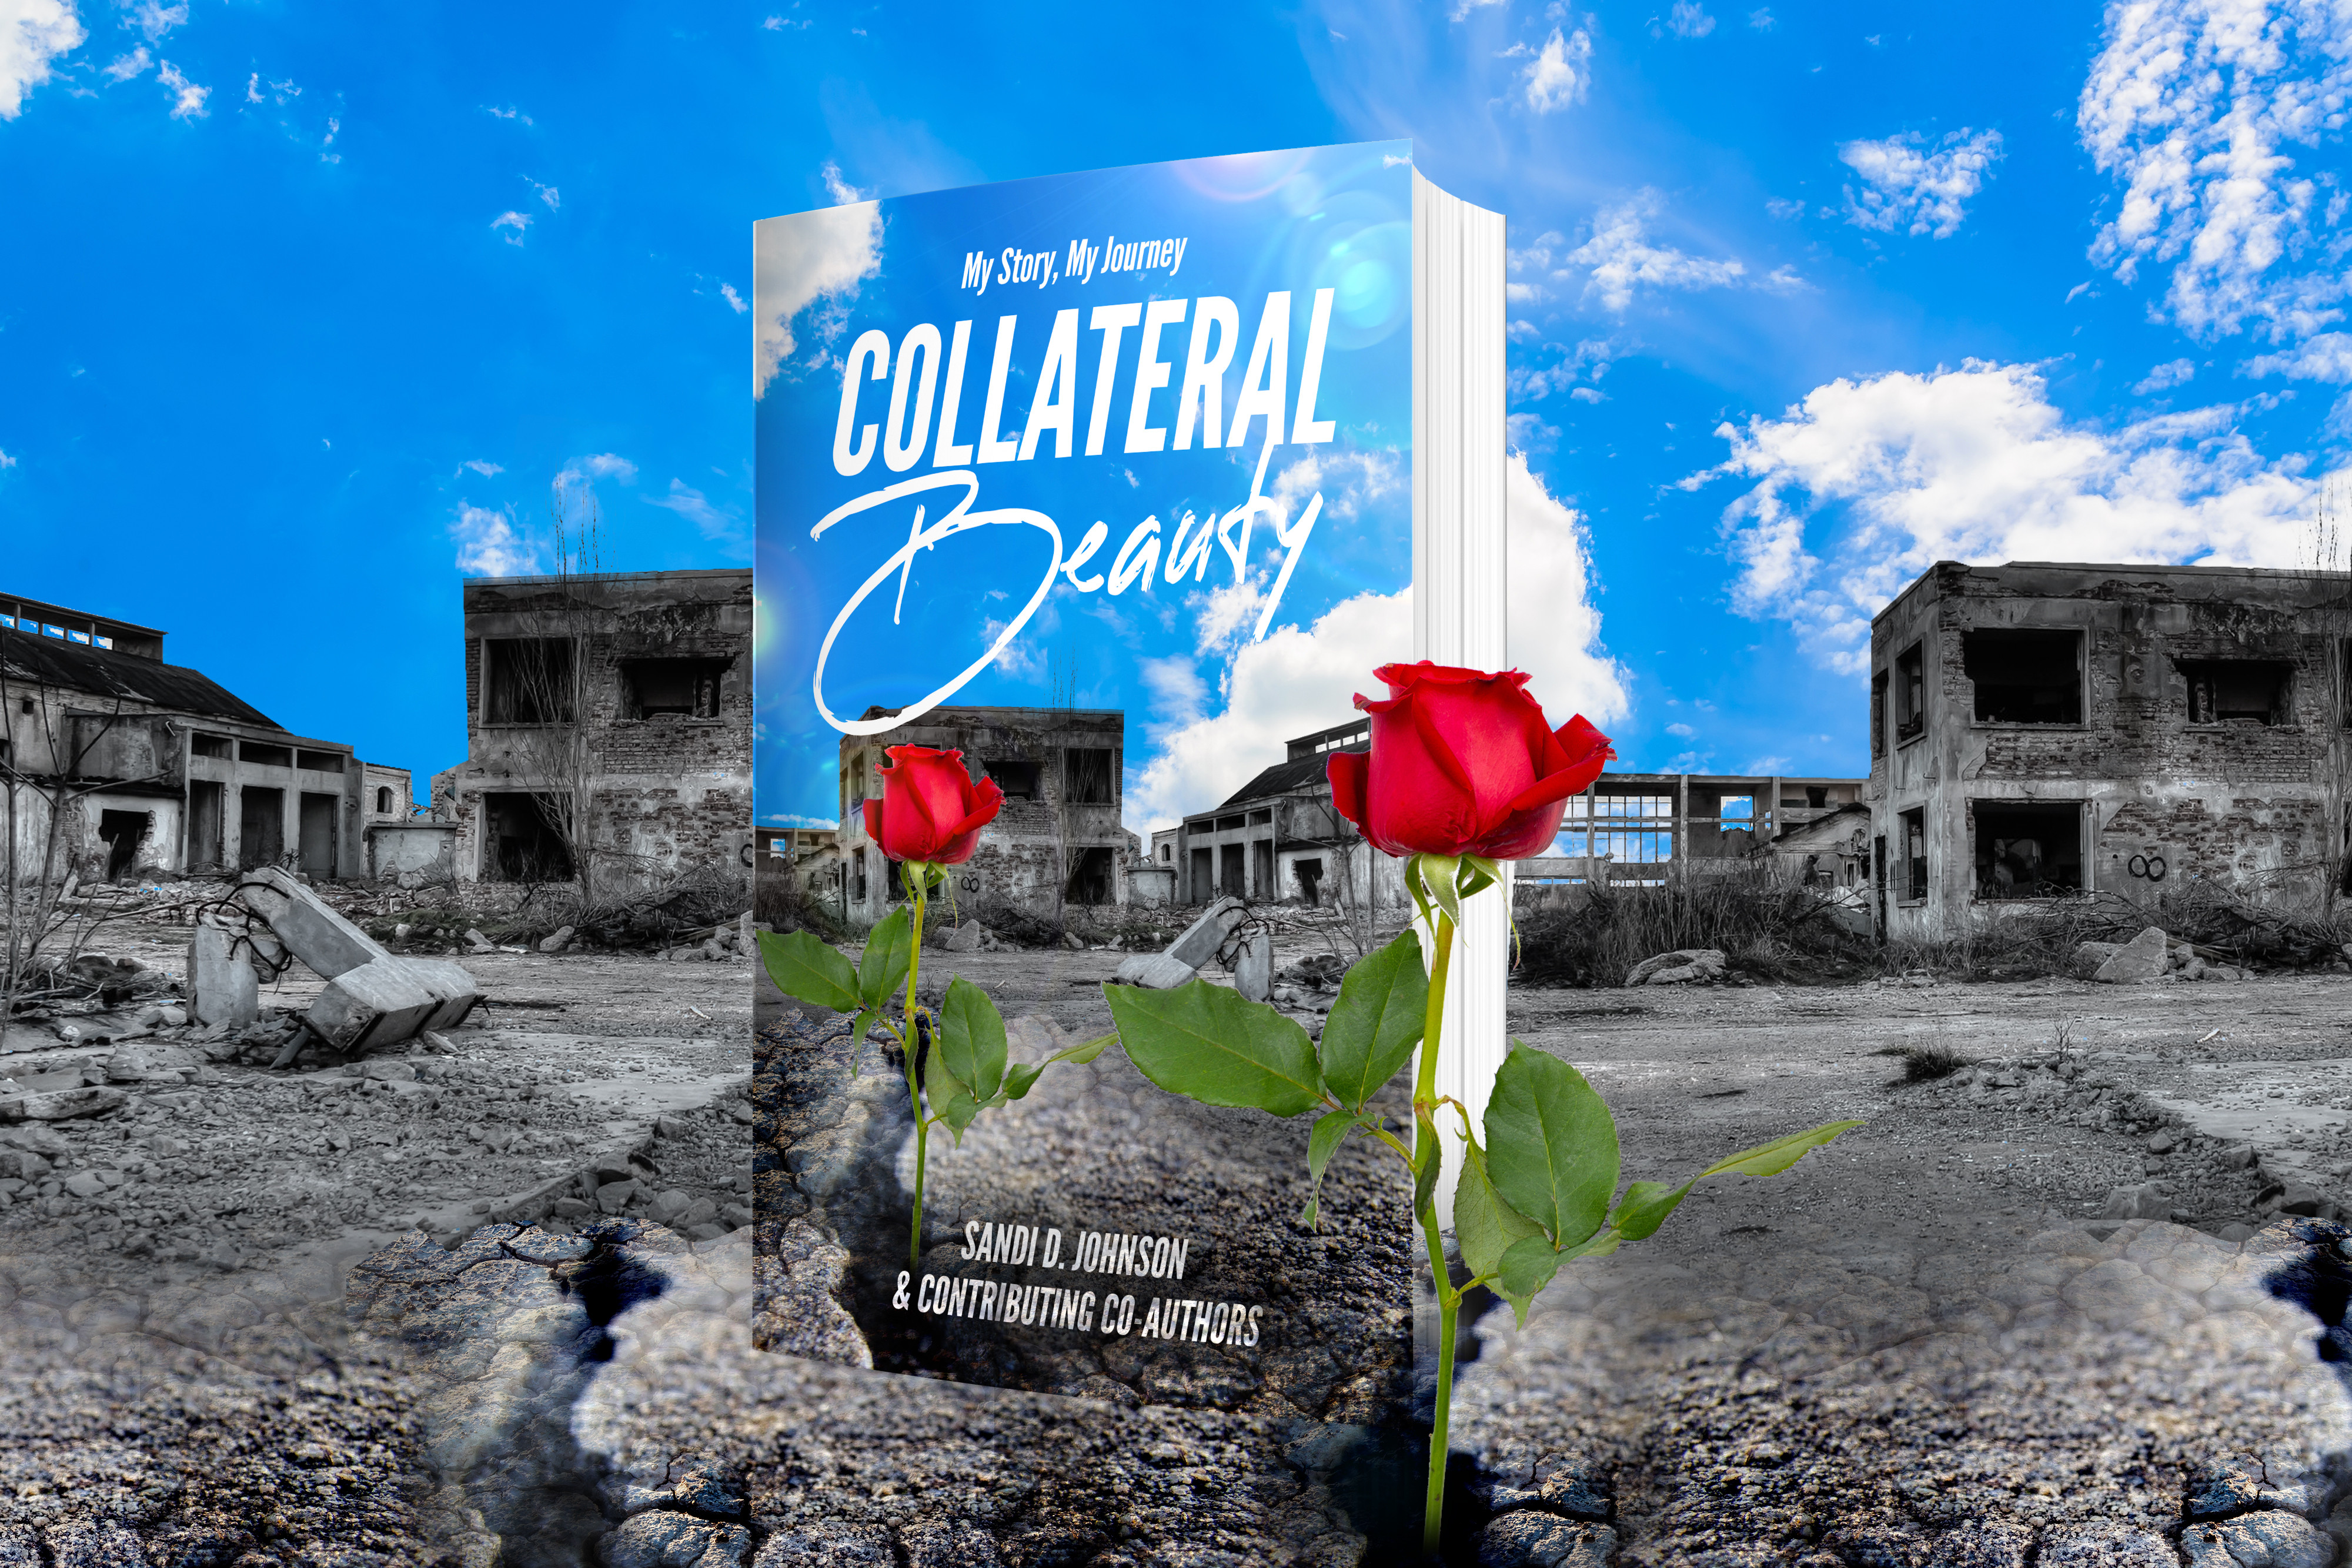 Embracing Your Collateral Beauty